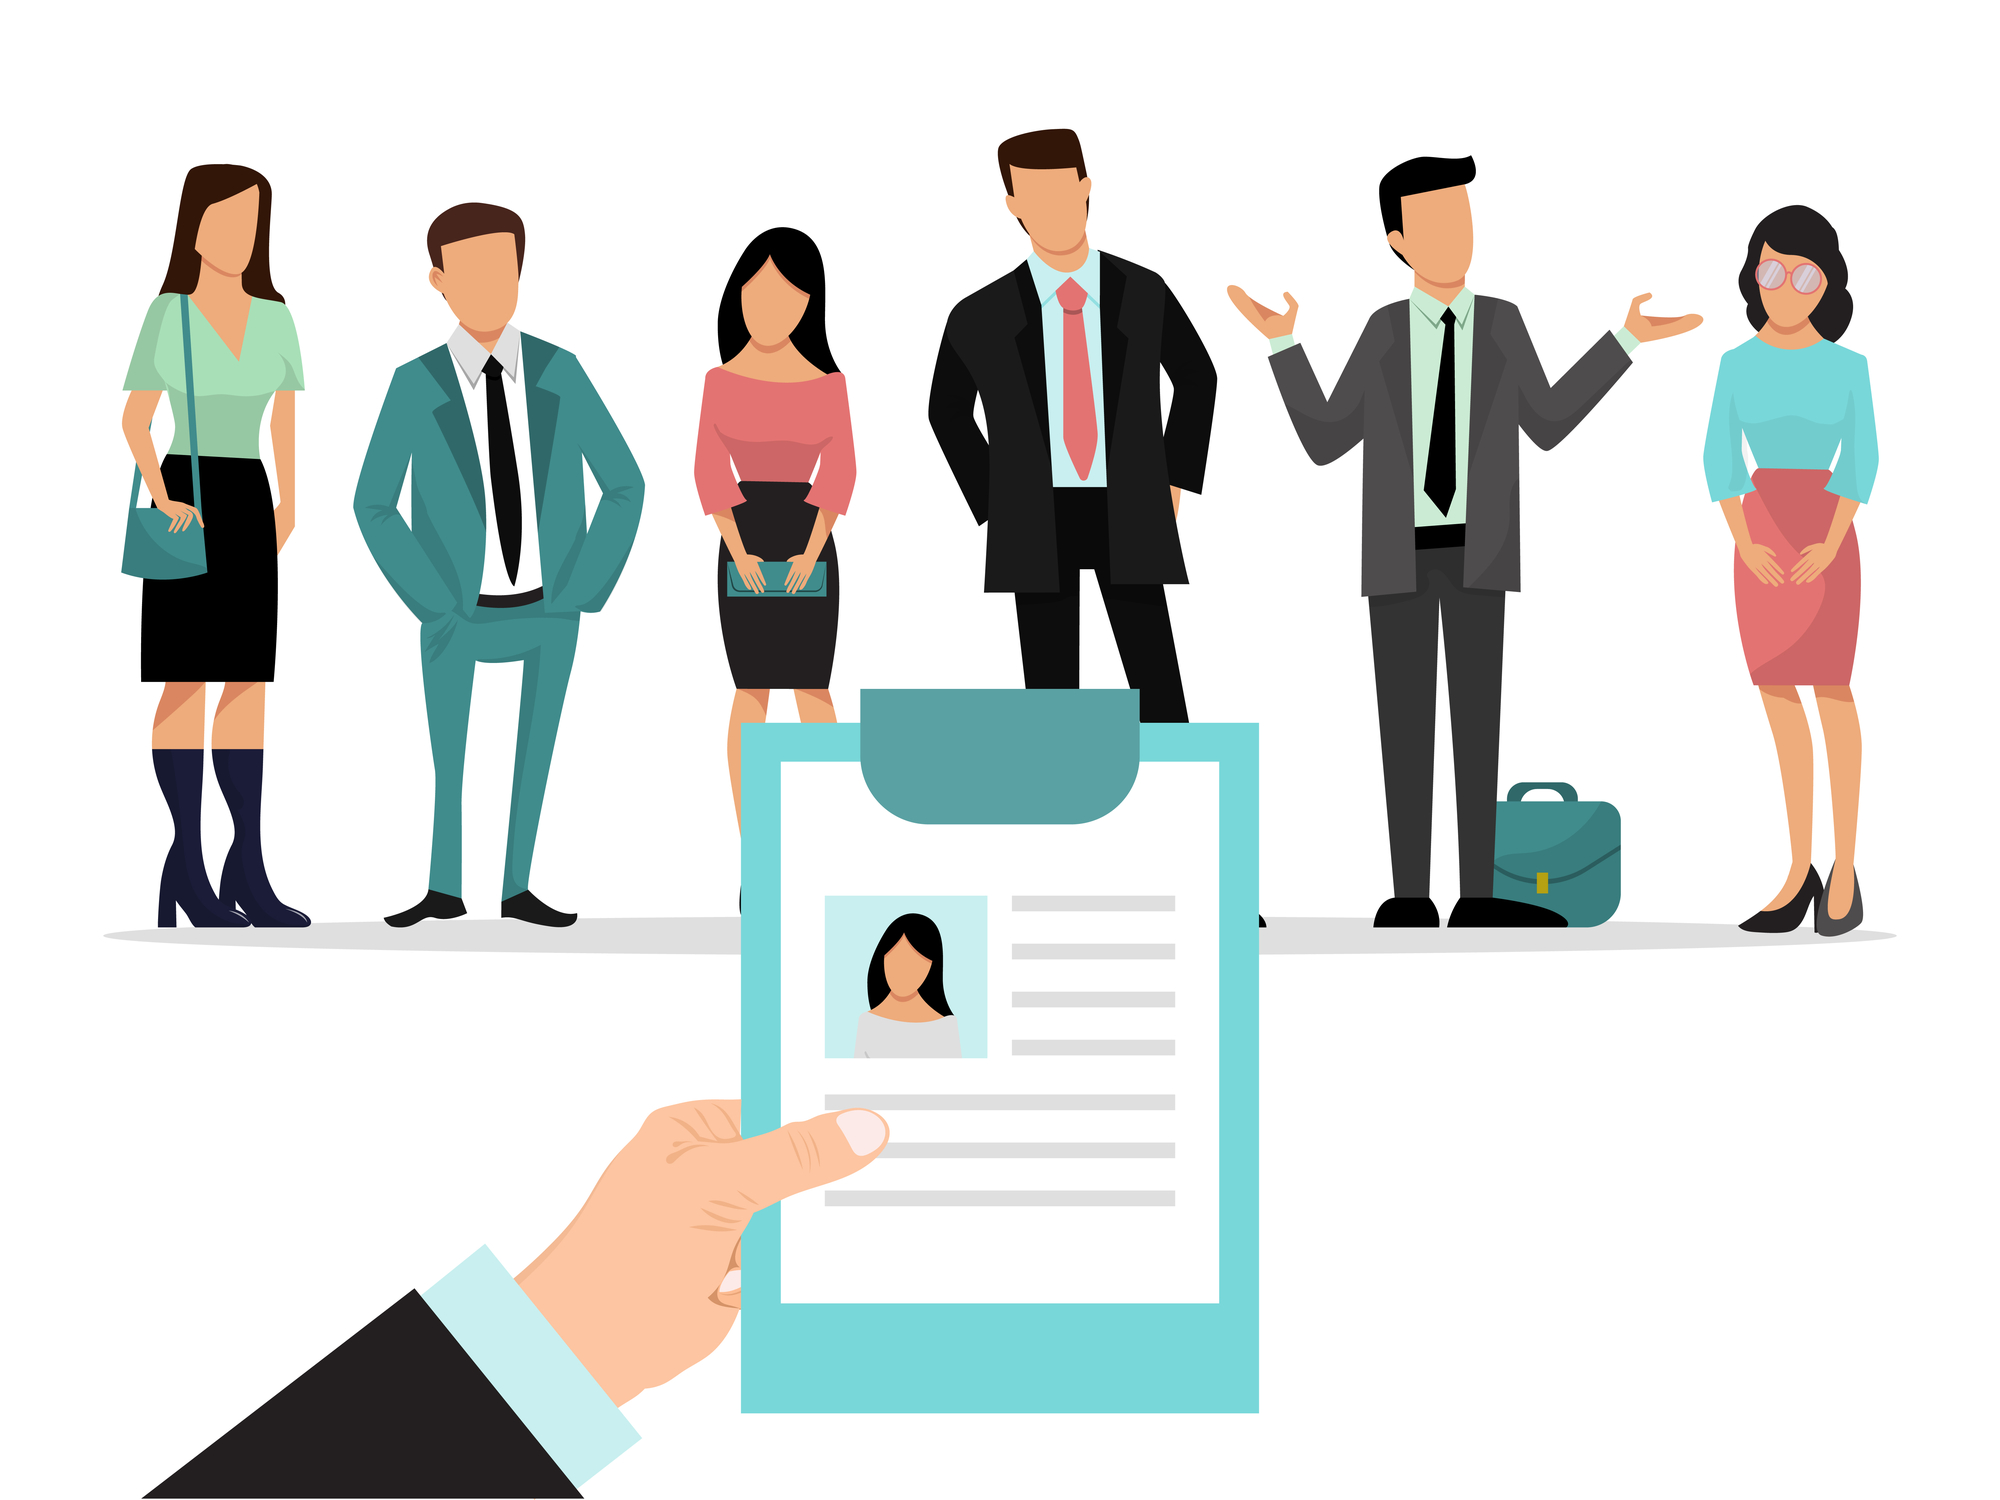 Employer is holding resume and choosing candidate for a job. Group of people employee in front of him. Recruitment business vector Illustration. Choosing ideal candidate among businesspeople